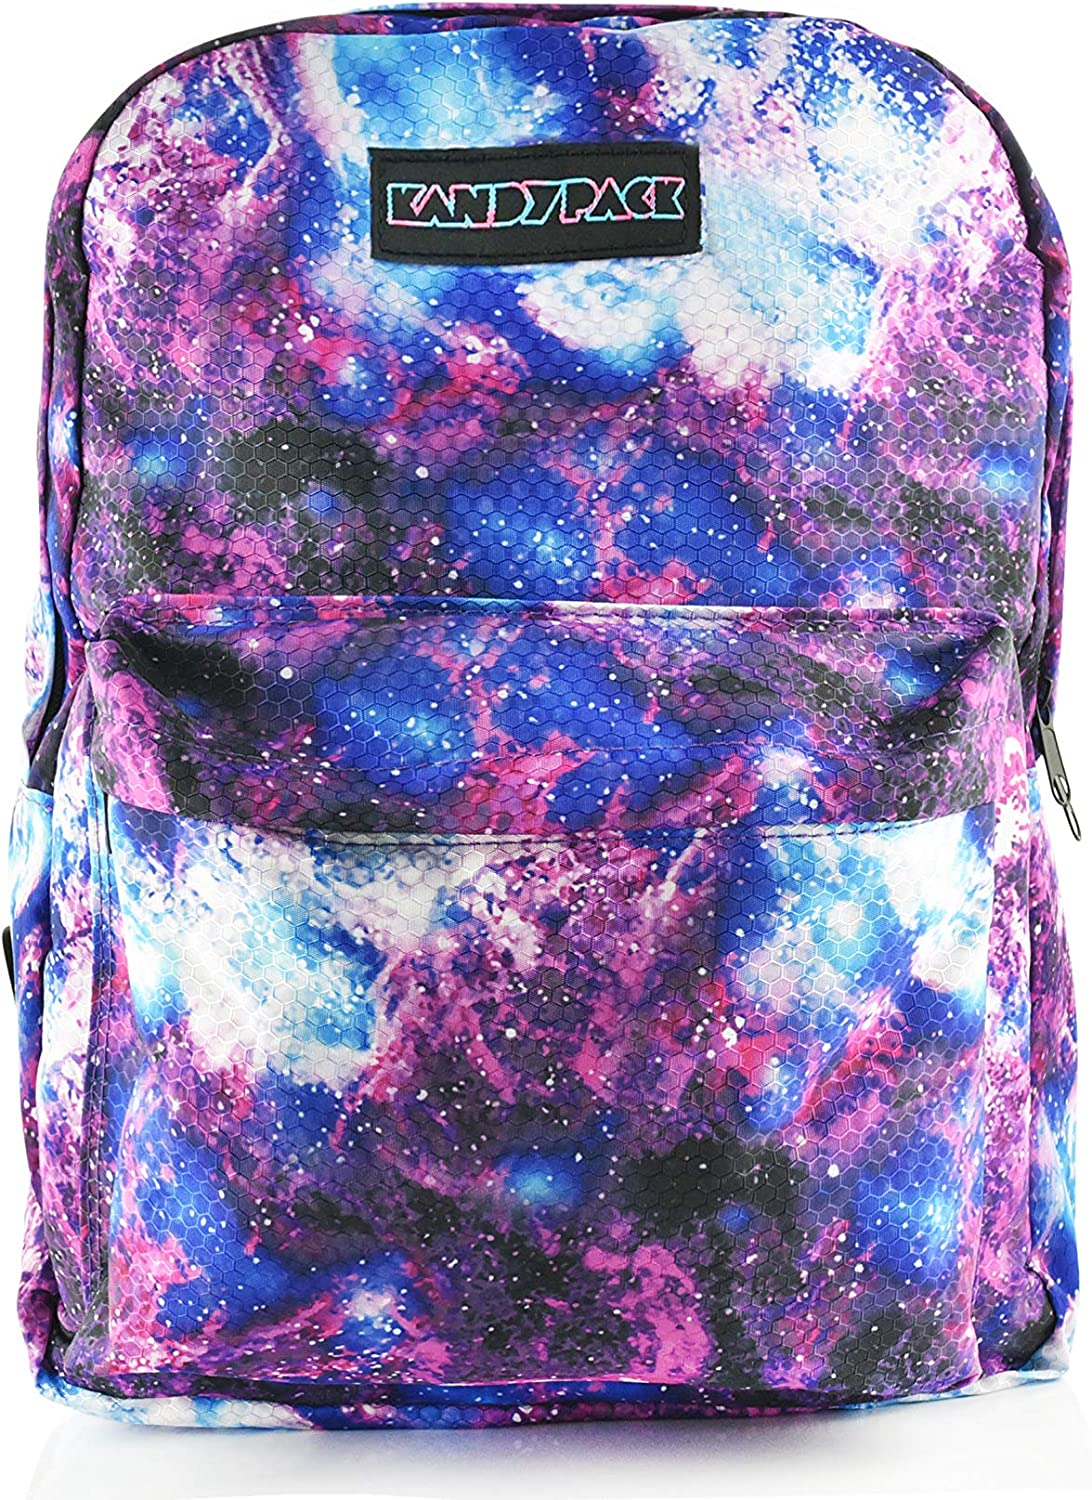 KANDYPACK Classic Hydration Pack